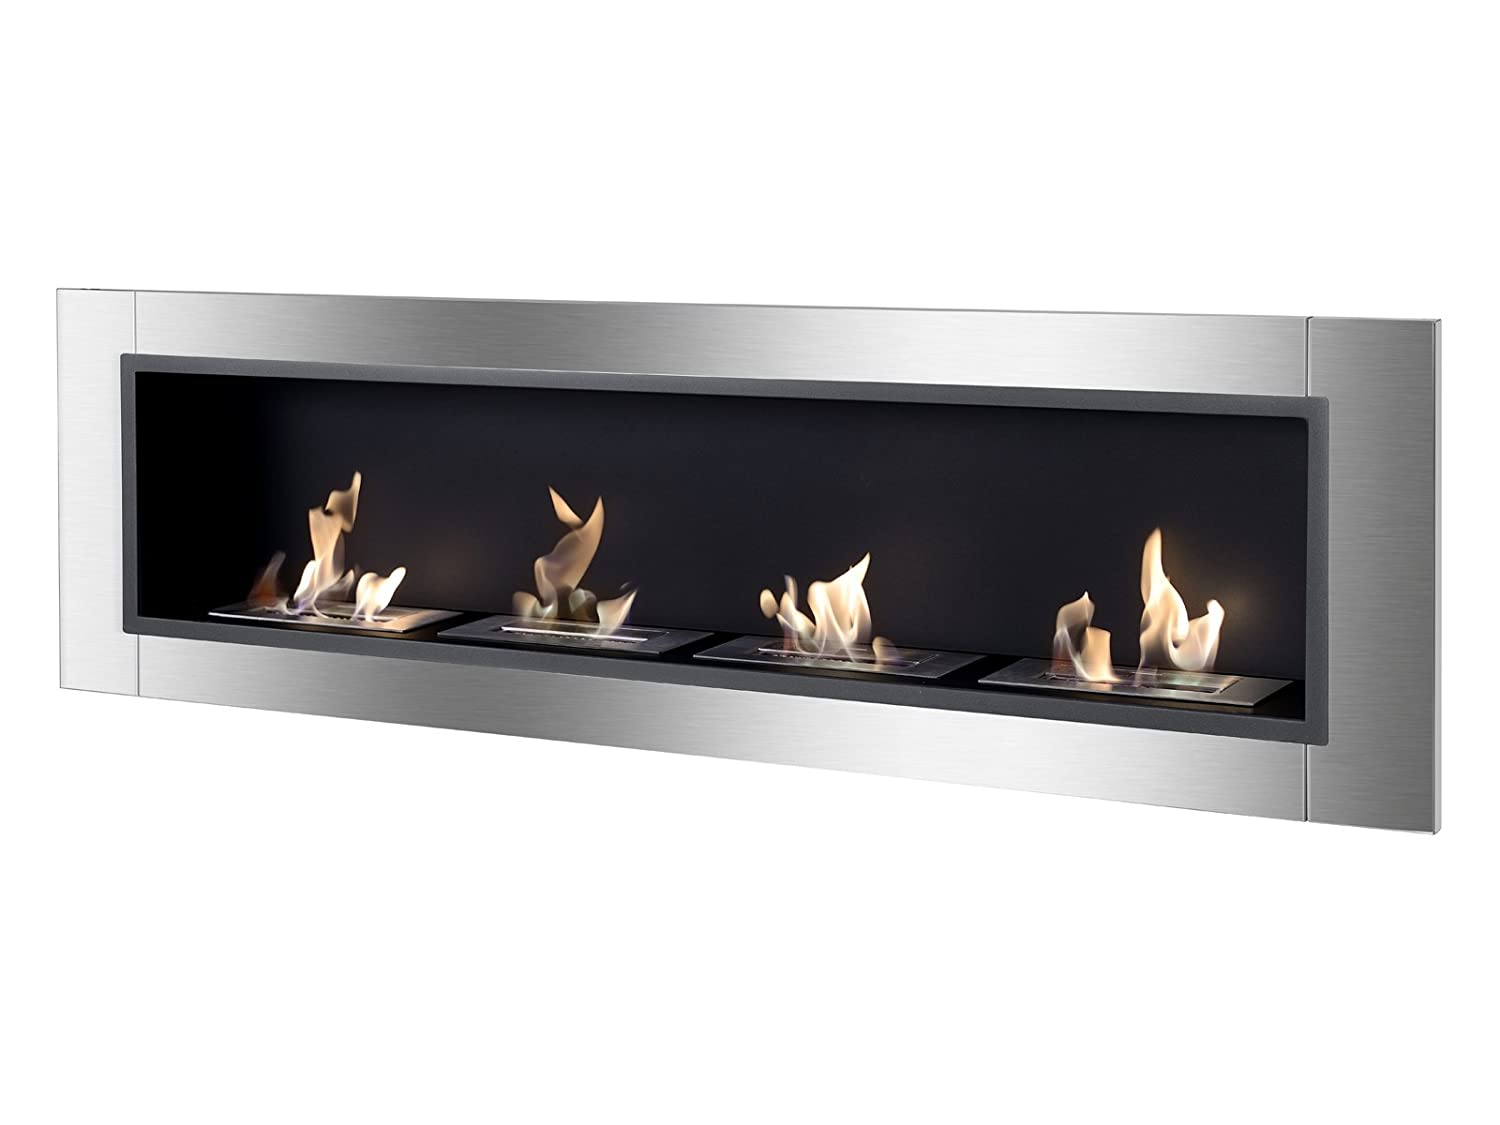 p inch cynergy bio built ethanol fireplace recessed ventless mounted in wall